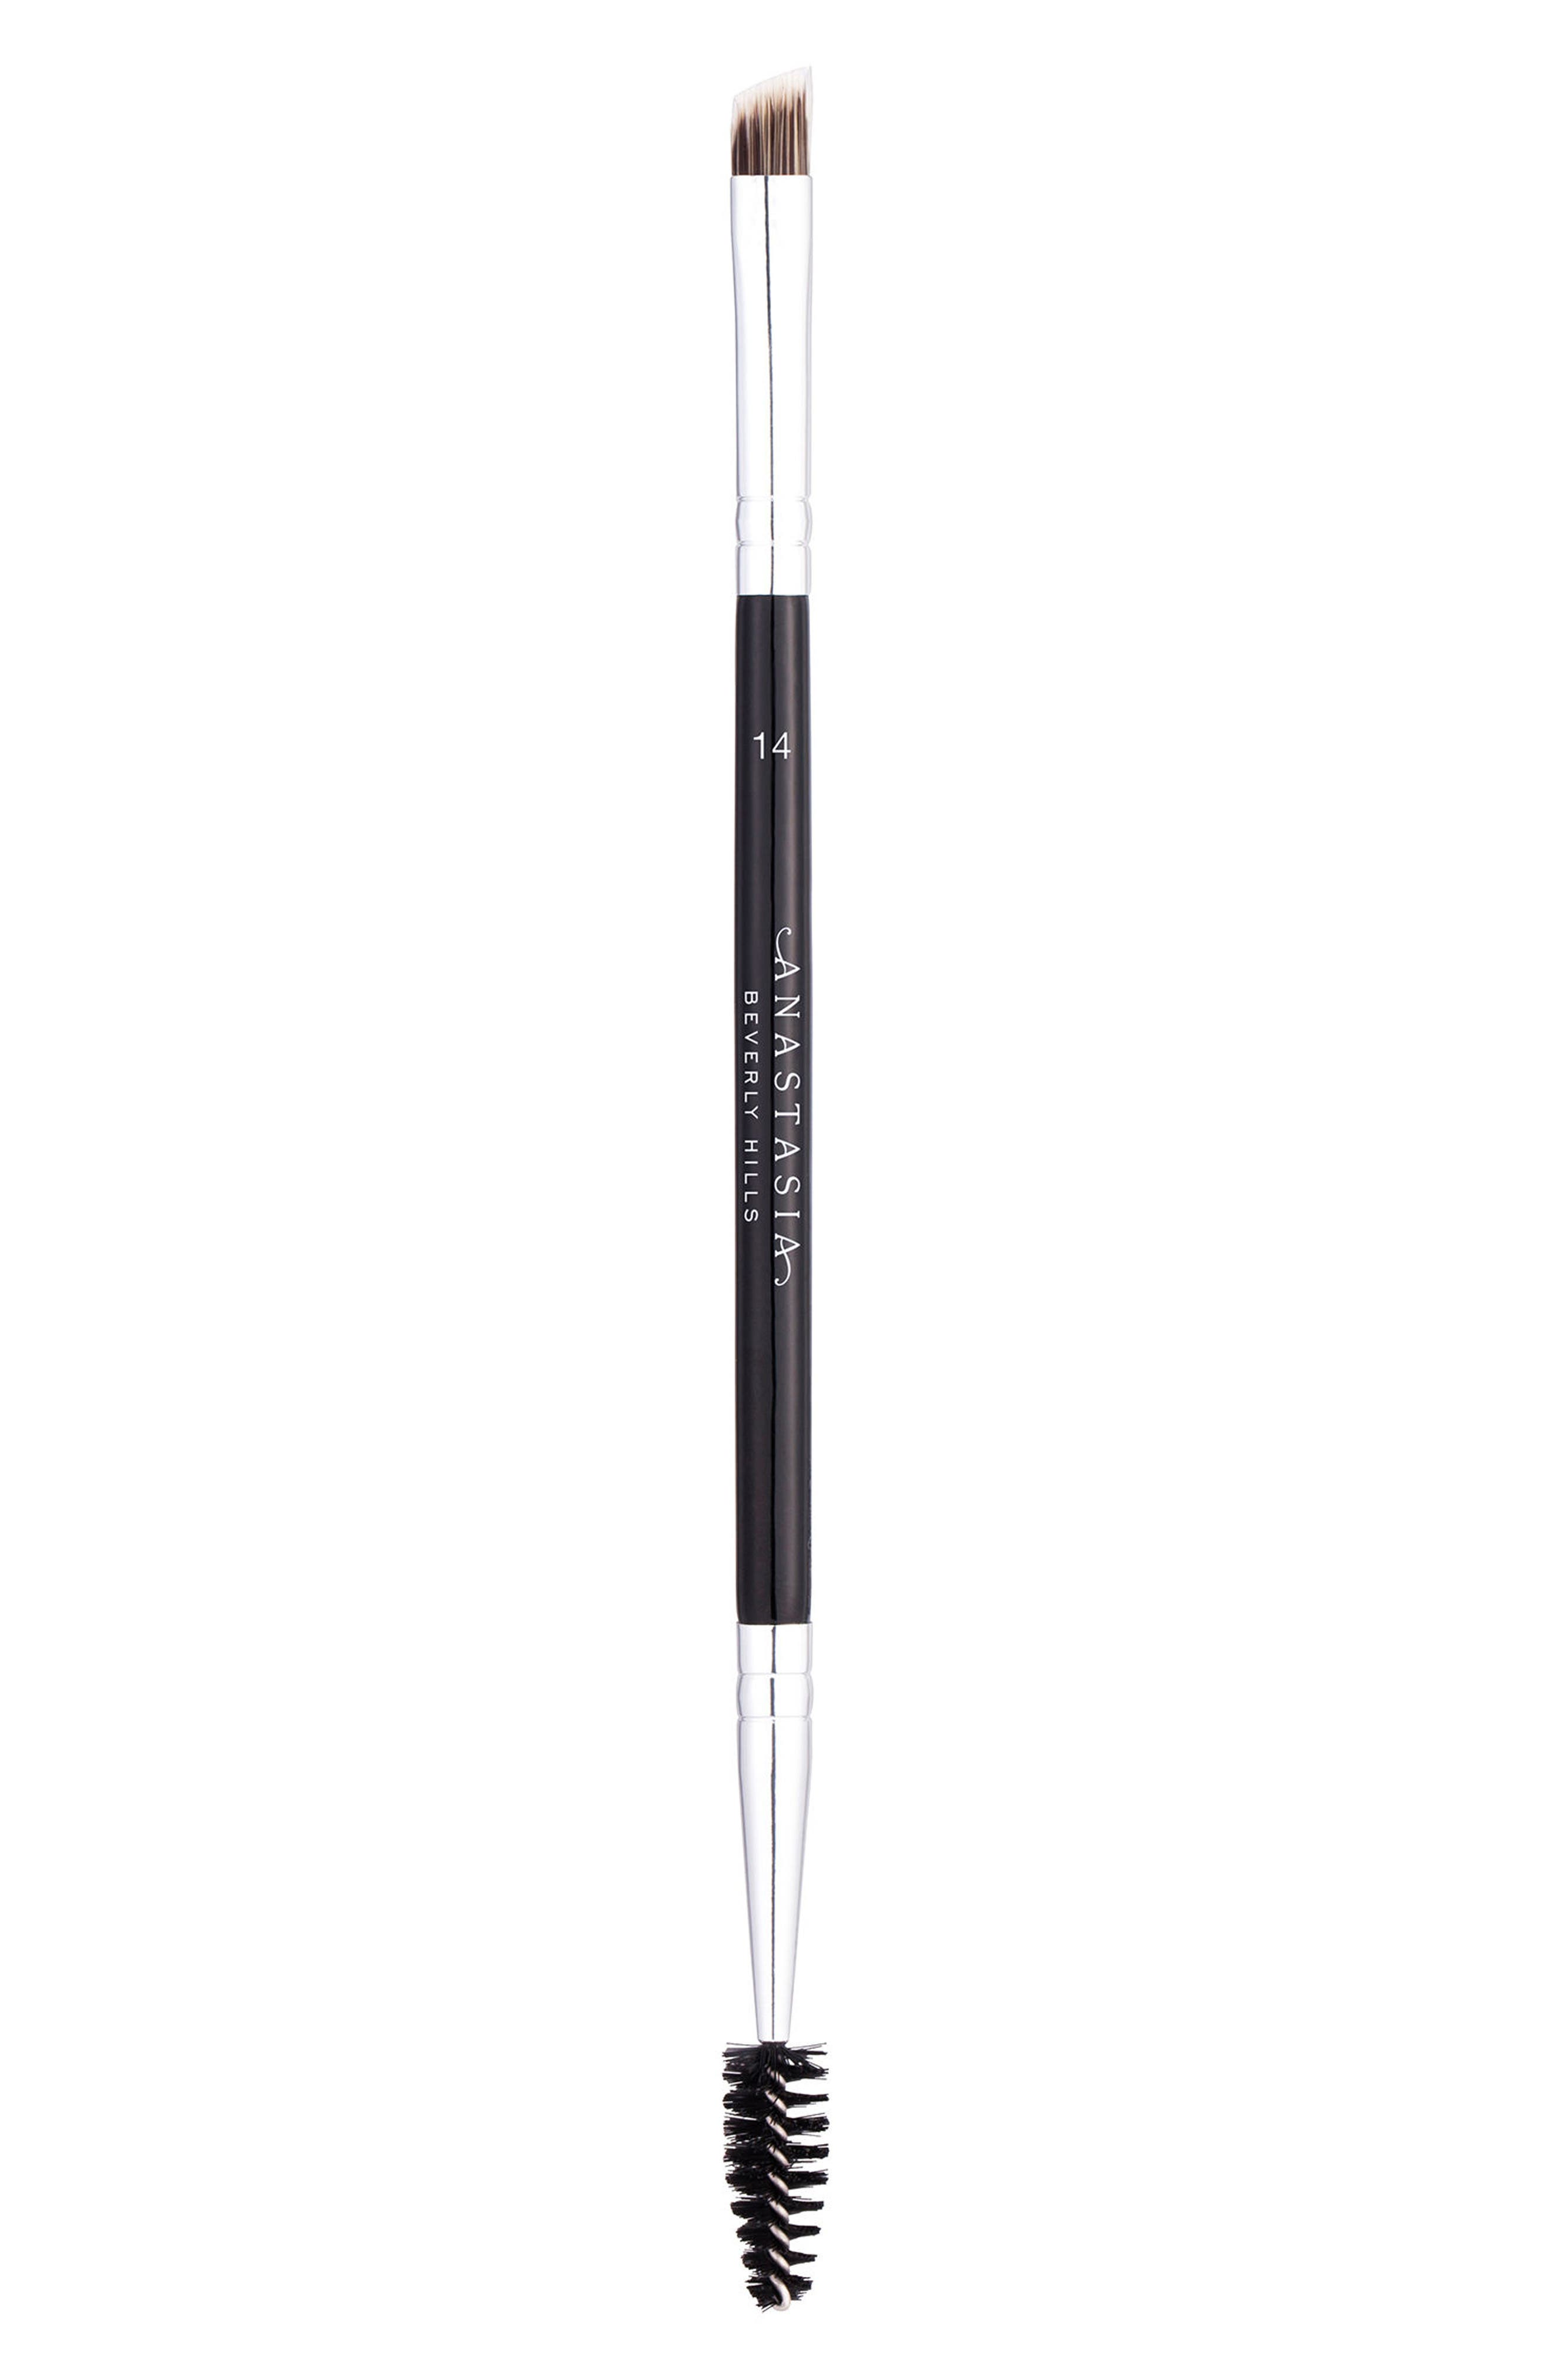 Alternate Image 1 Selected - Anastasia Beverly Hills #14 Dual-Sided Brow & Eyeliner Brush